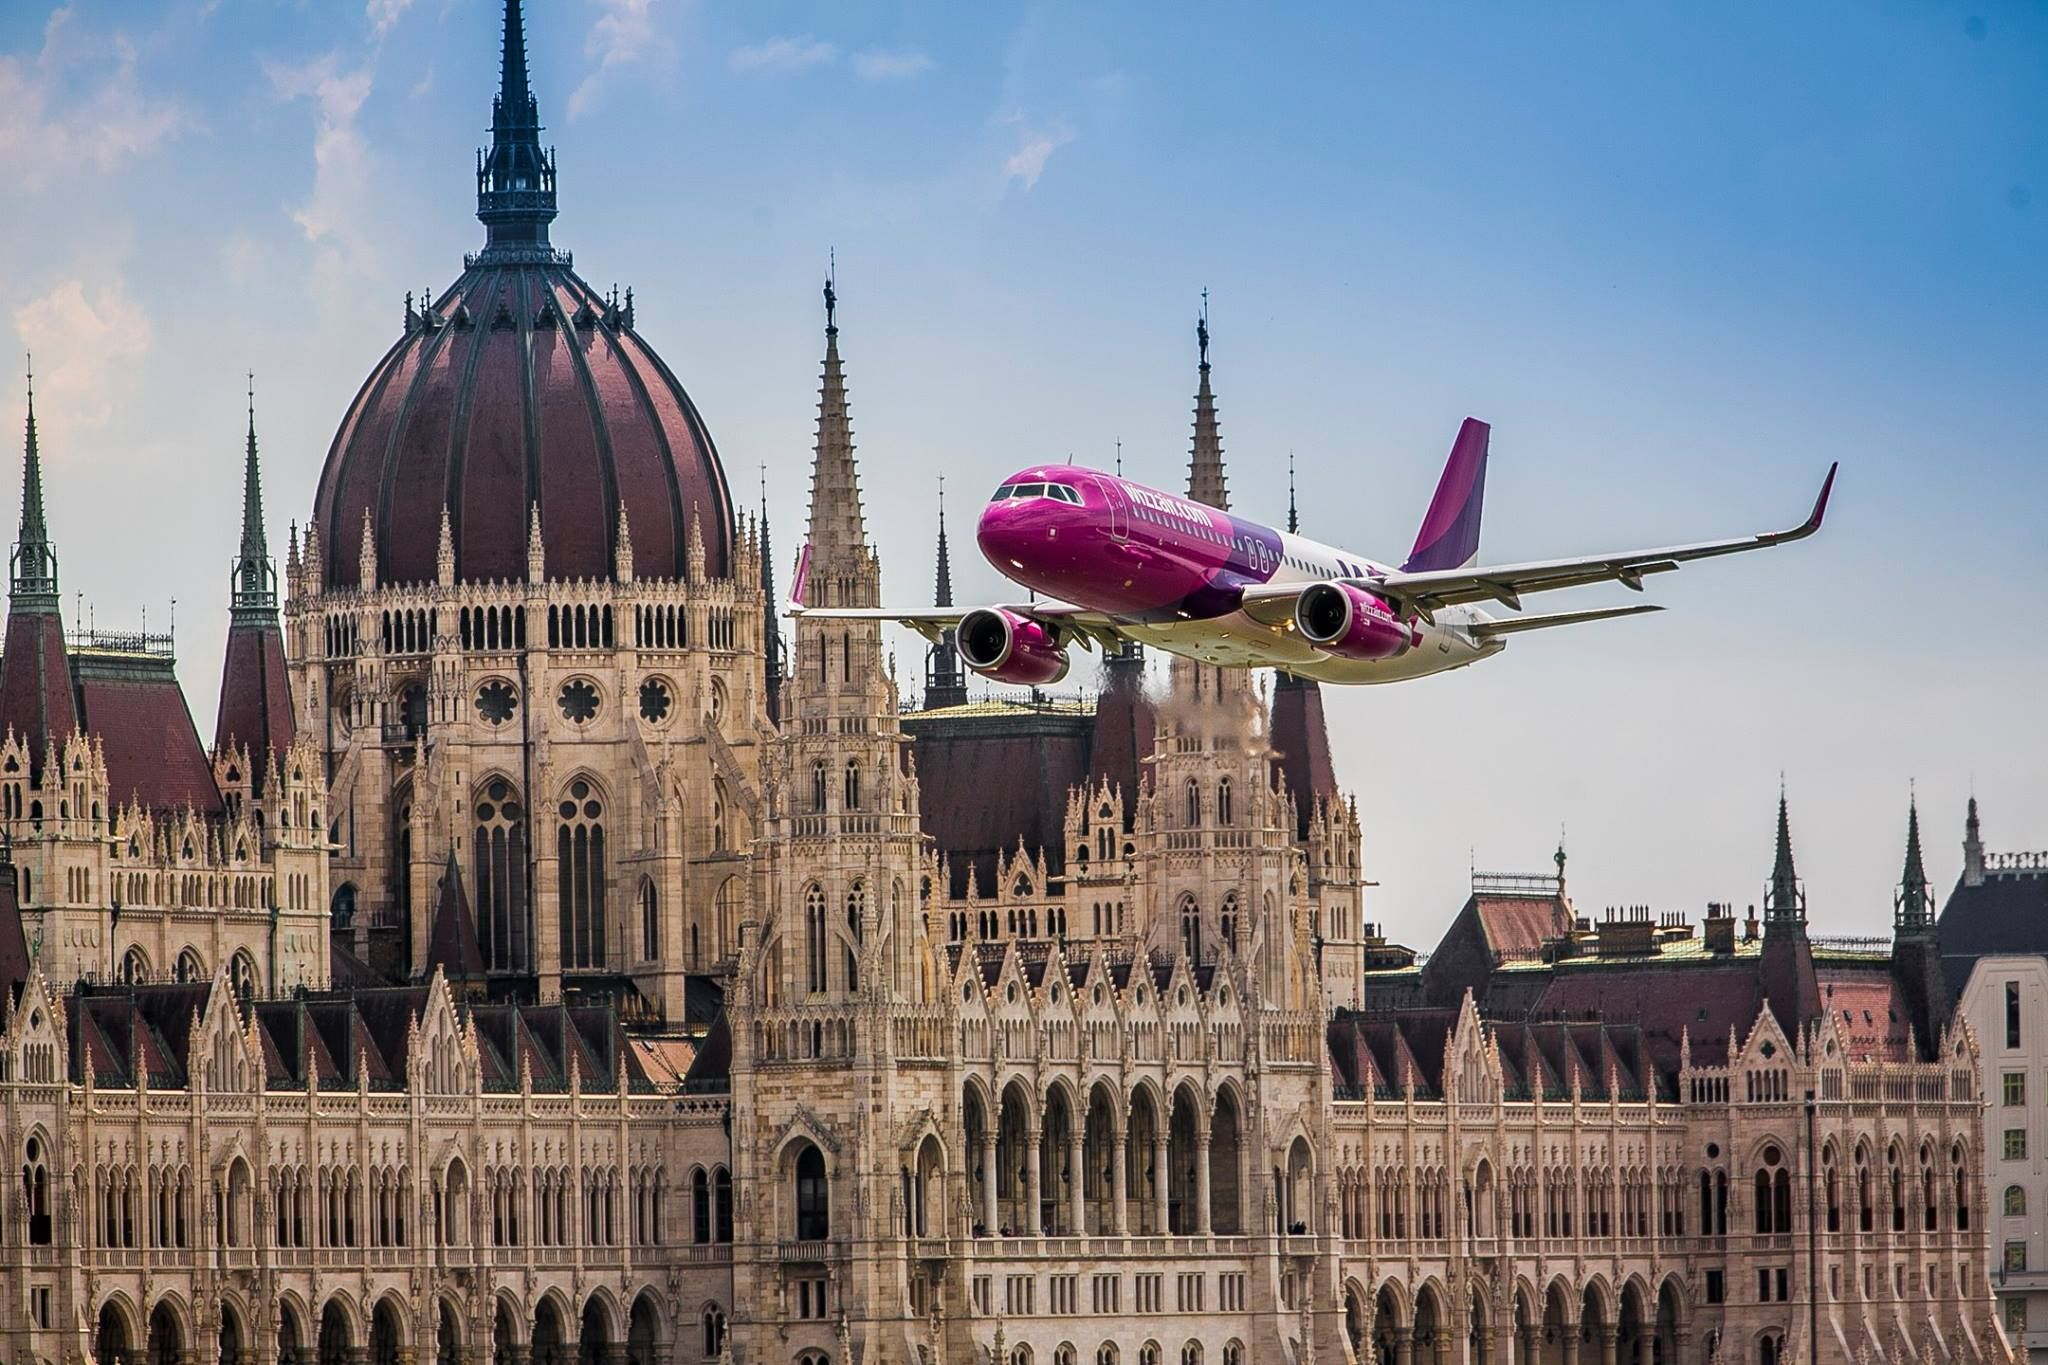 wizzair is one of the budget airlines to fly to the main